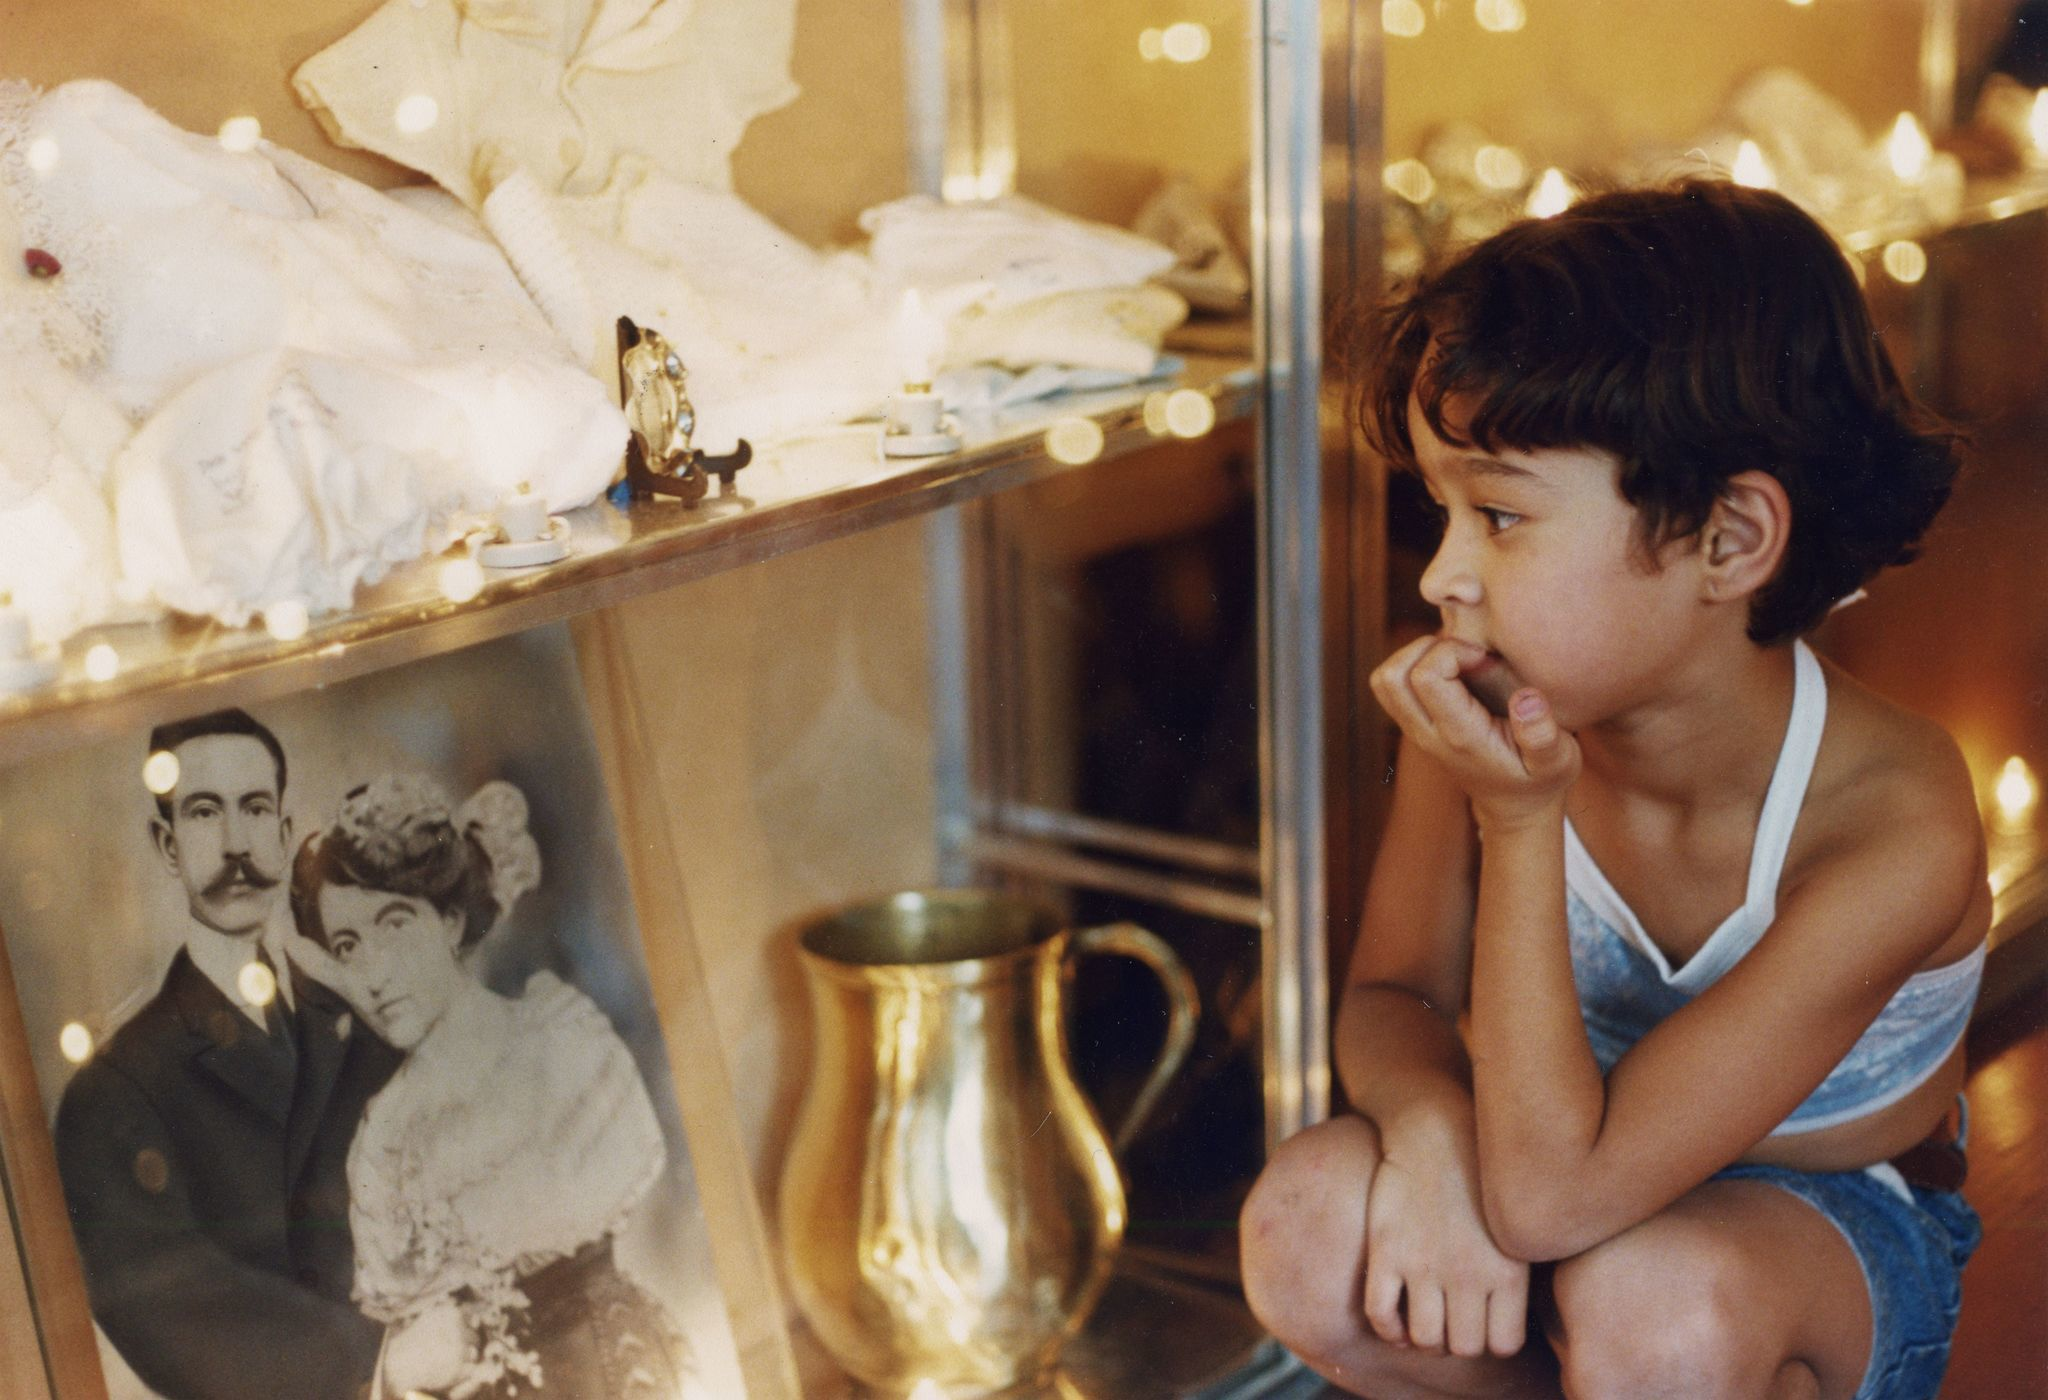 A child gazes at objects gathered in Suzanne Lacy's